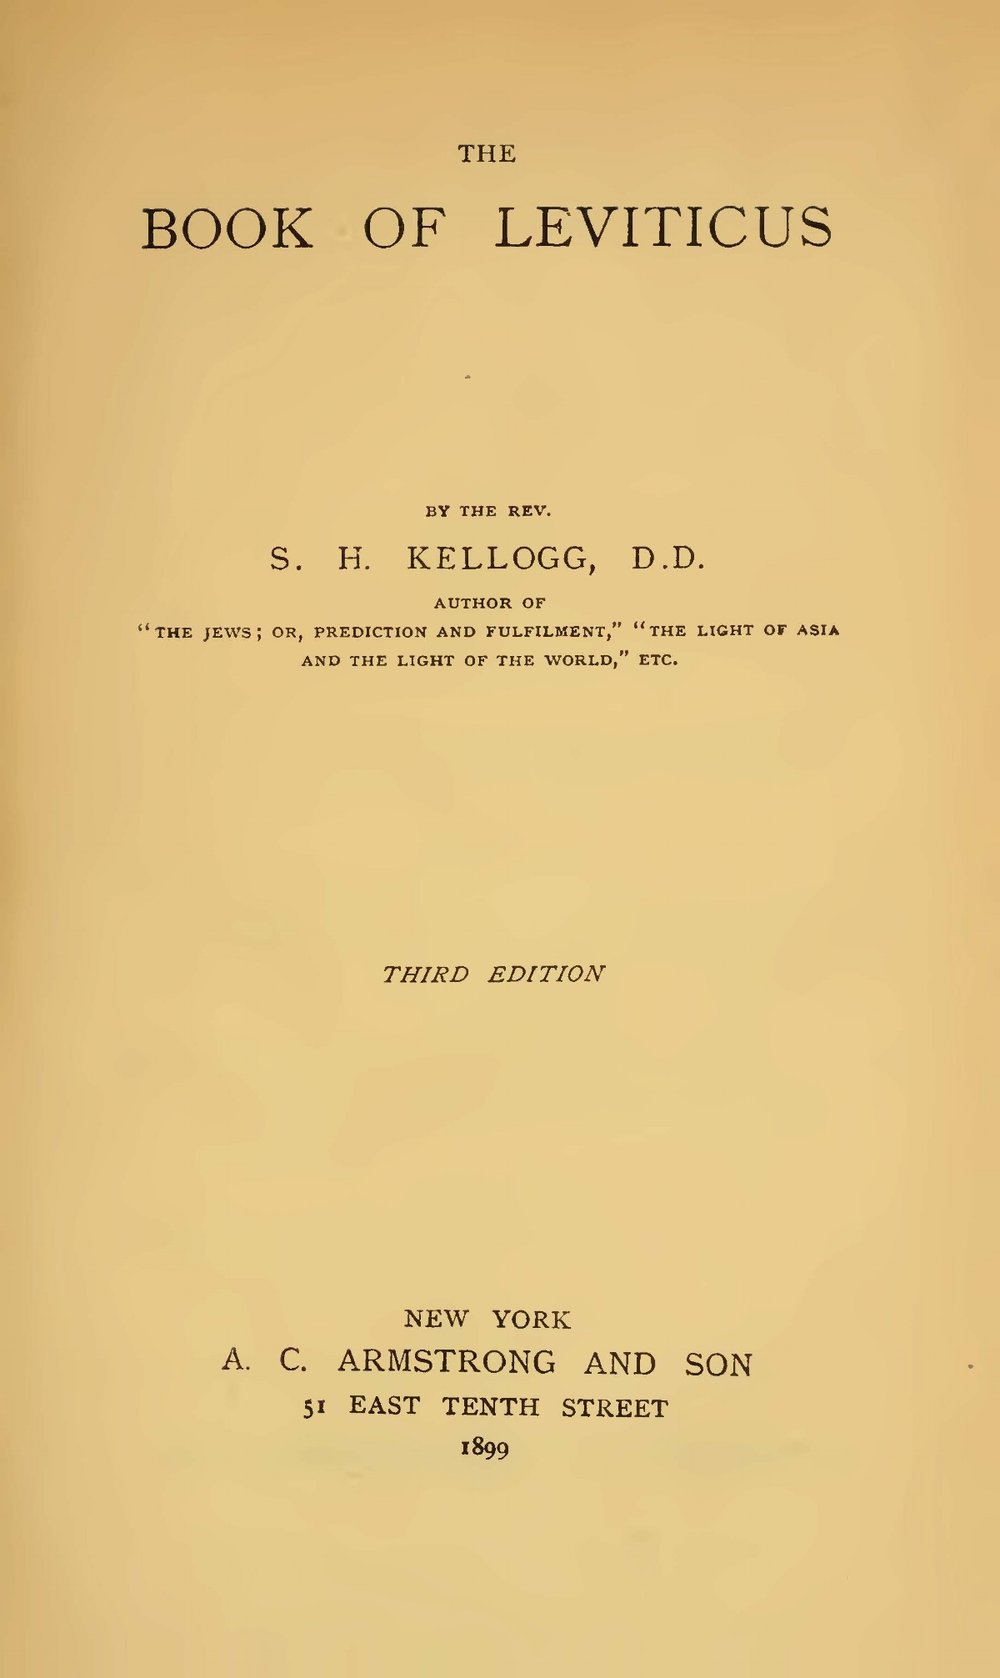 Kellogg, Samuel Henry, The Book of Leviticus Title Page.jpg